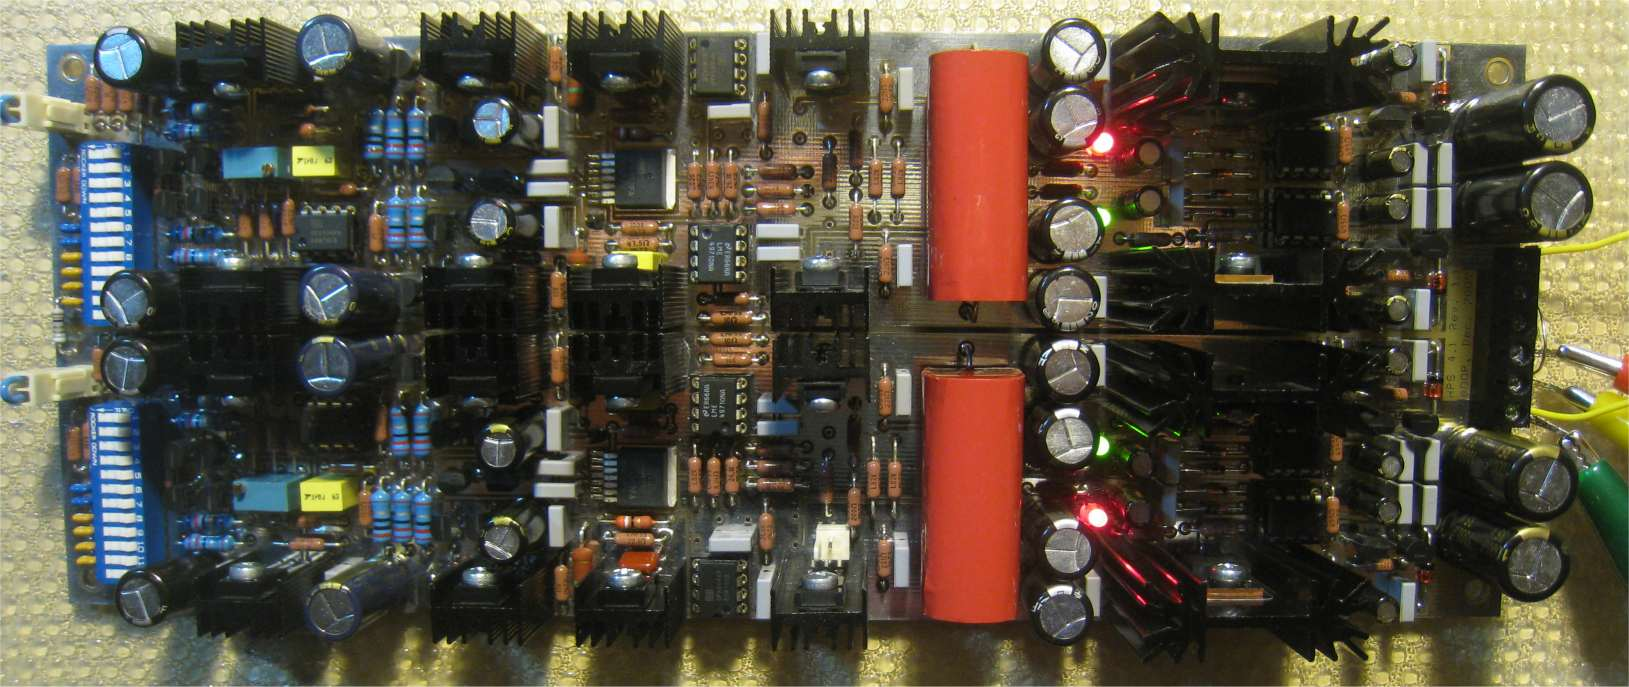 hps wiring diagram with capacitor milbank meter base low noise design schematics